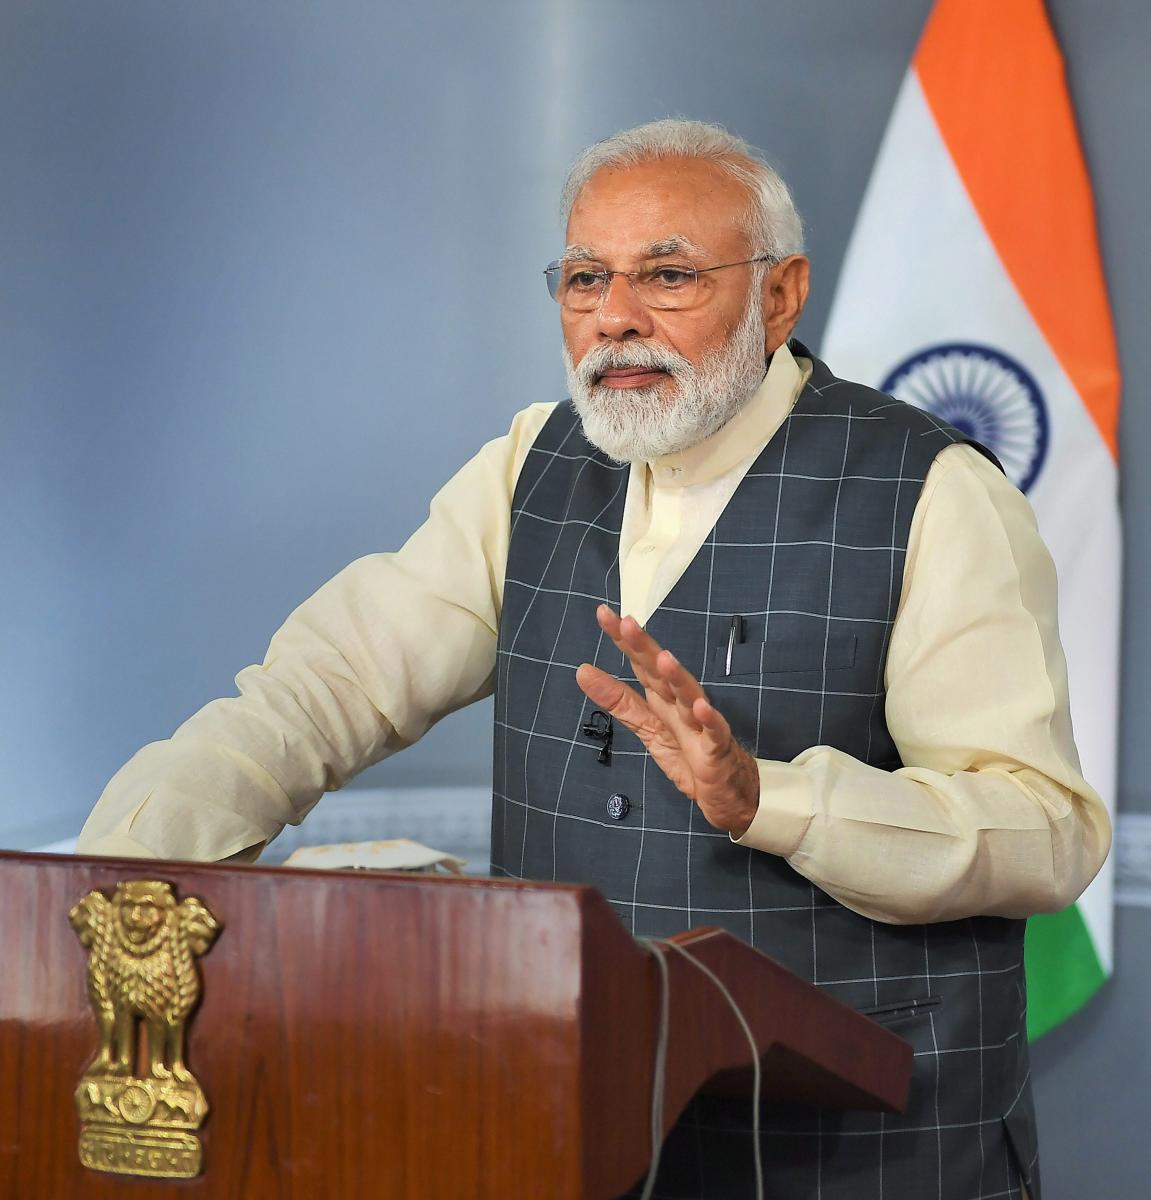 """Prime Minister Narendra Modi on Friday claimed that """"non-cooperation"""" by the previous Samajwadi Party government in Uttar Pradesh was responsible for the delay in start of a beautification project in his Lok Sabha constituency. PTI file photo"""